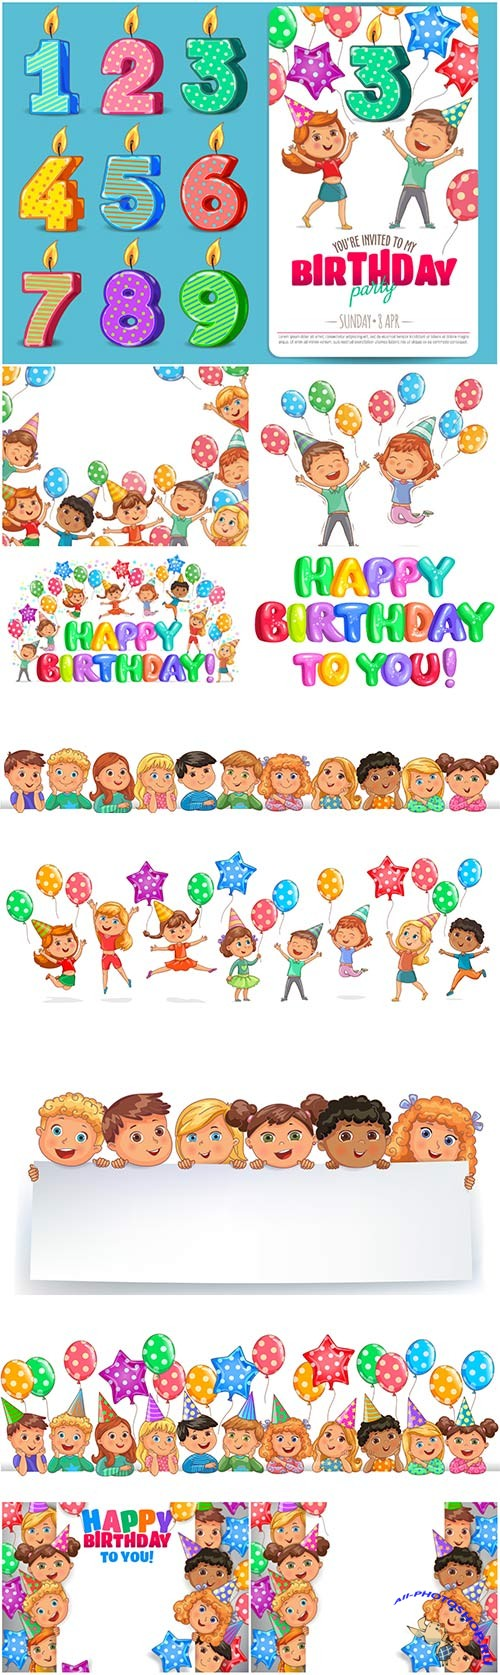 Happy birthday vector illustration, funny kids